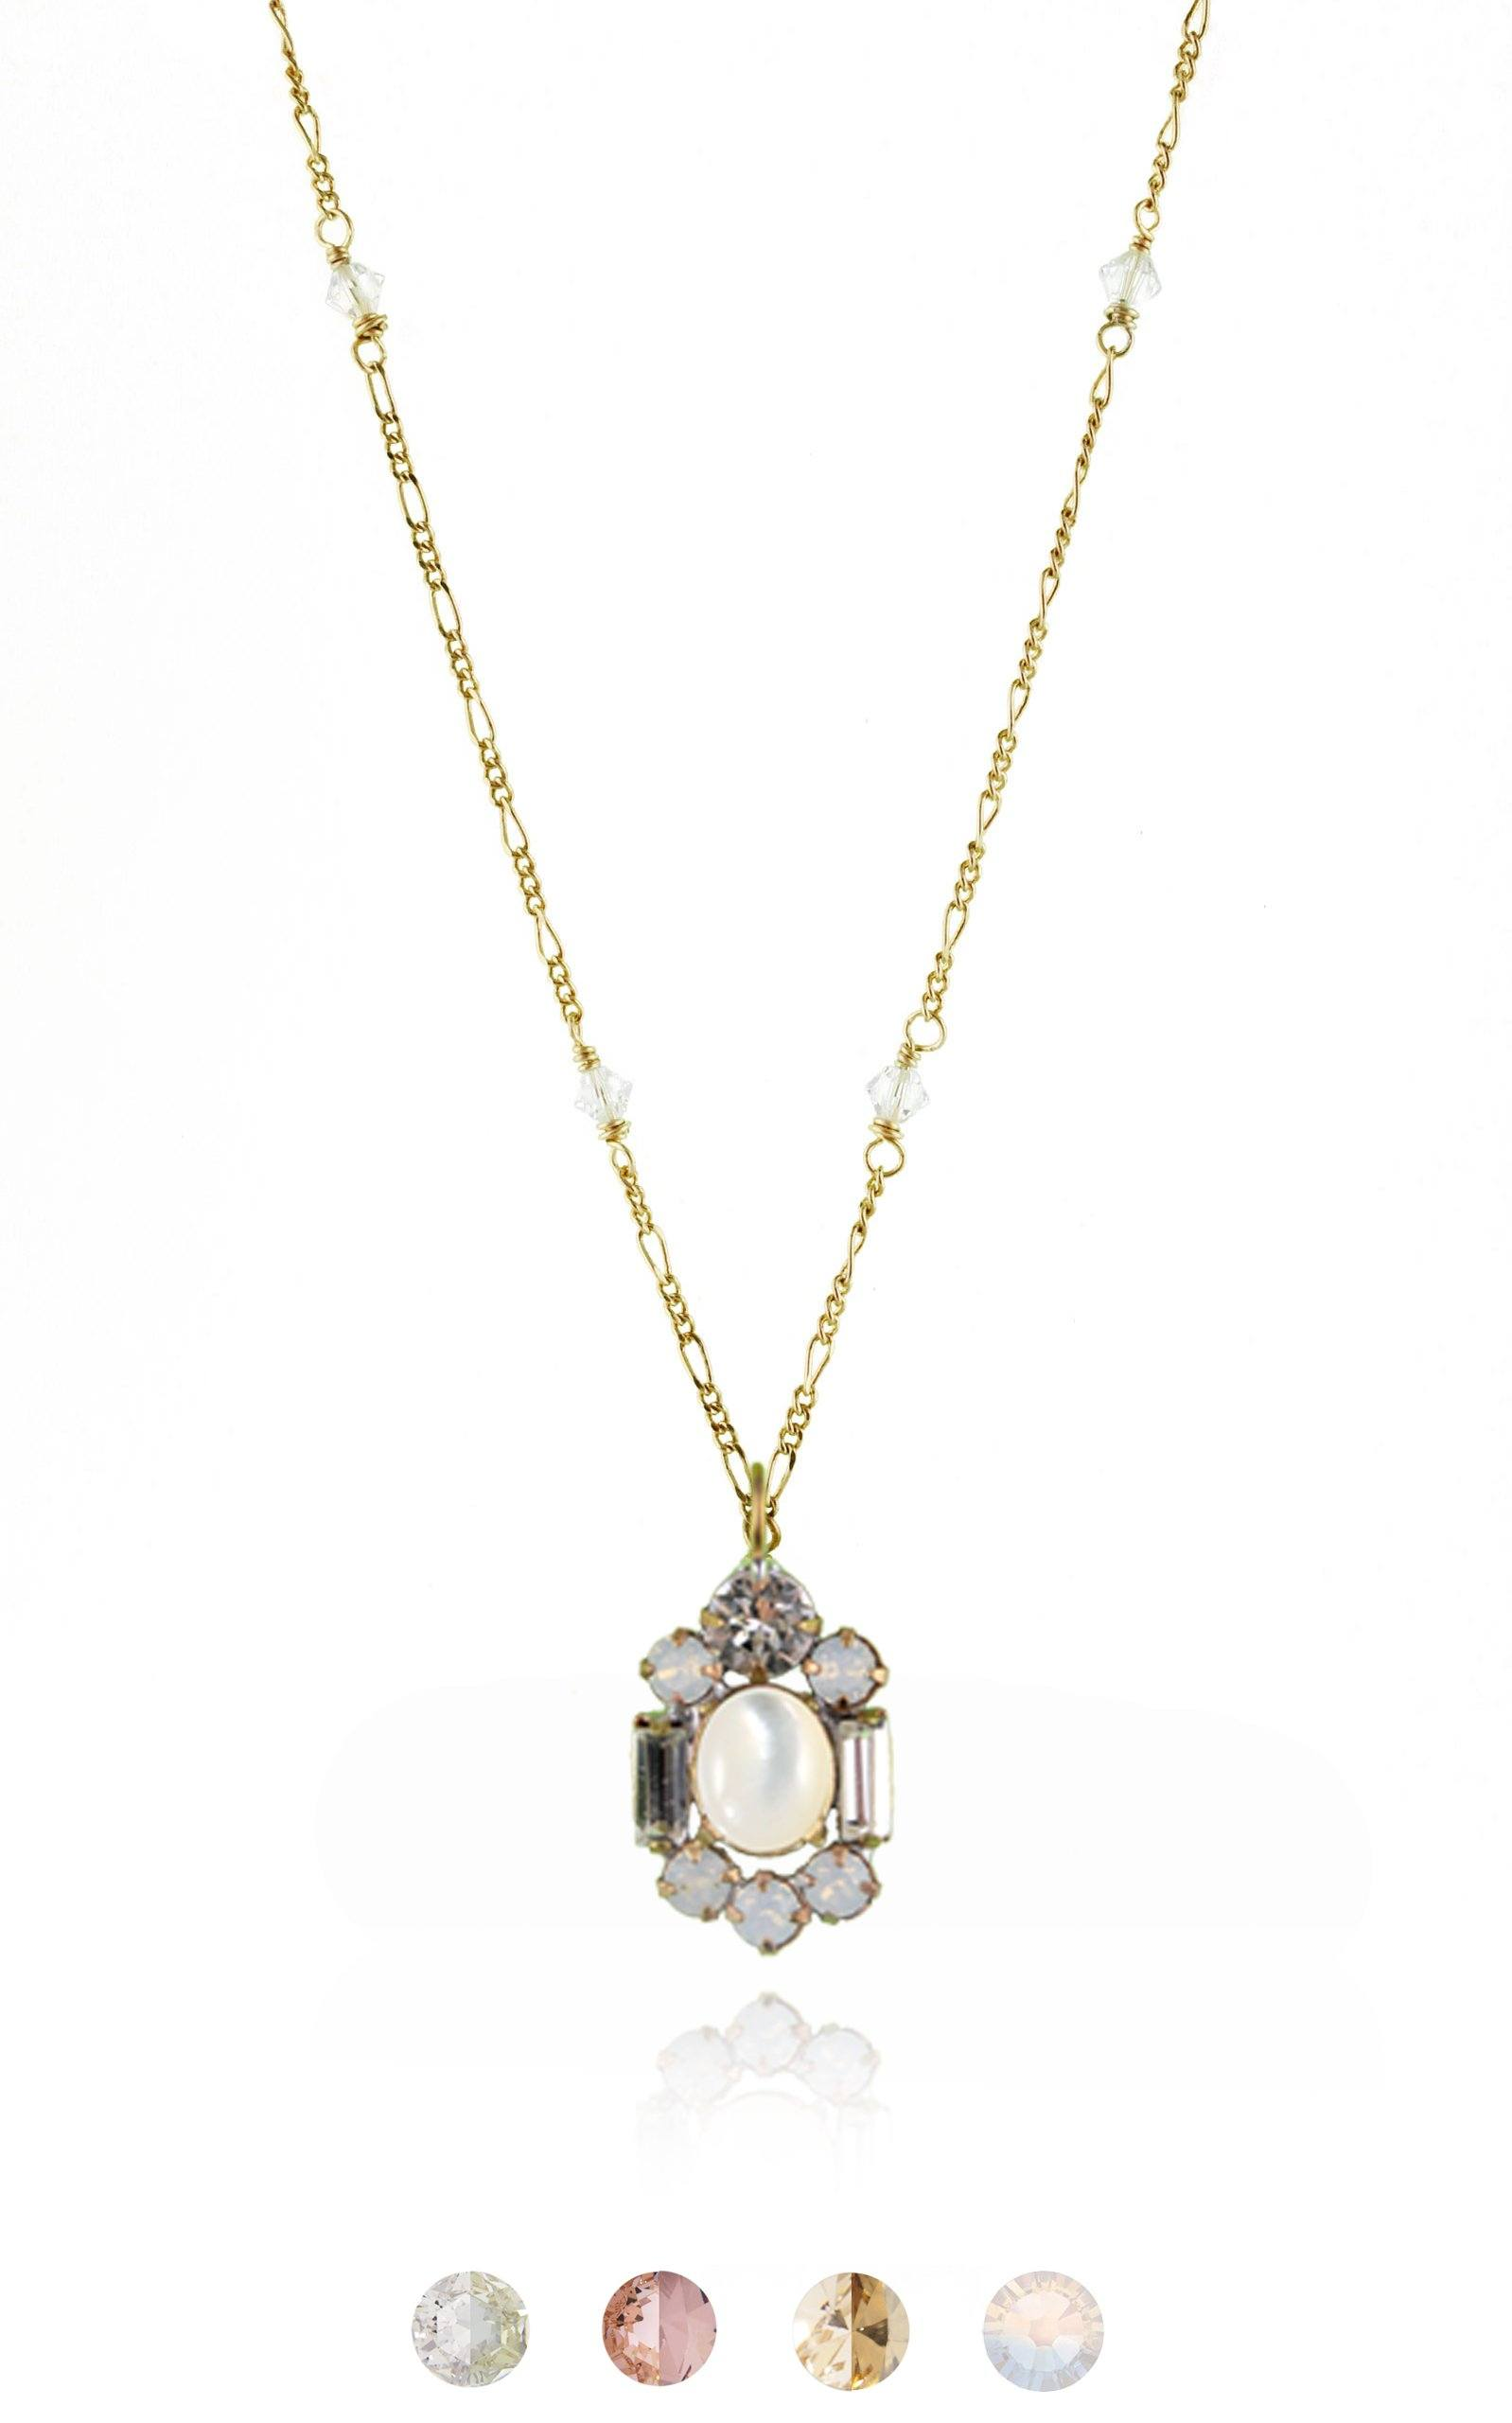 The Petite Emily Necklace